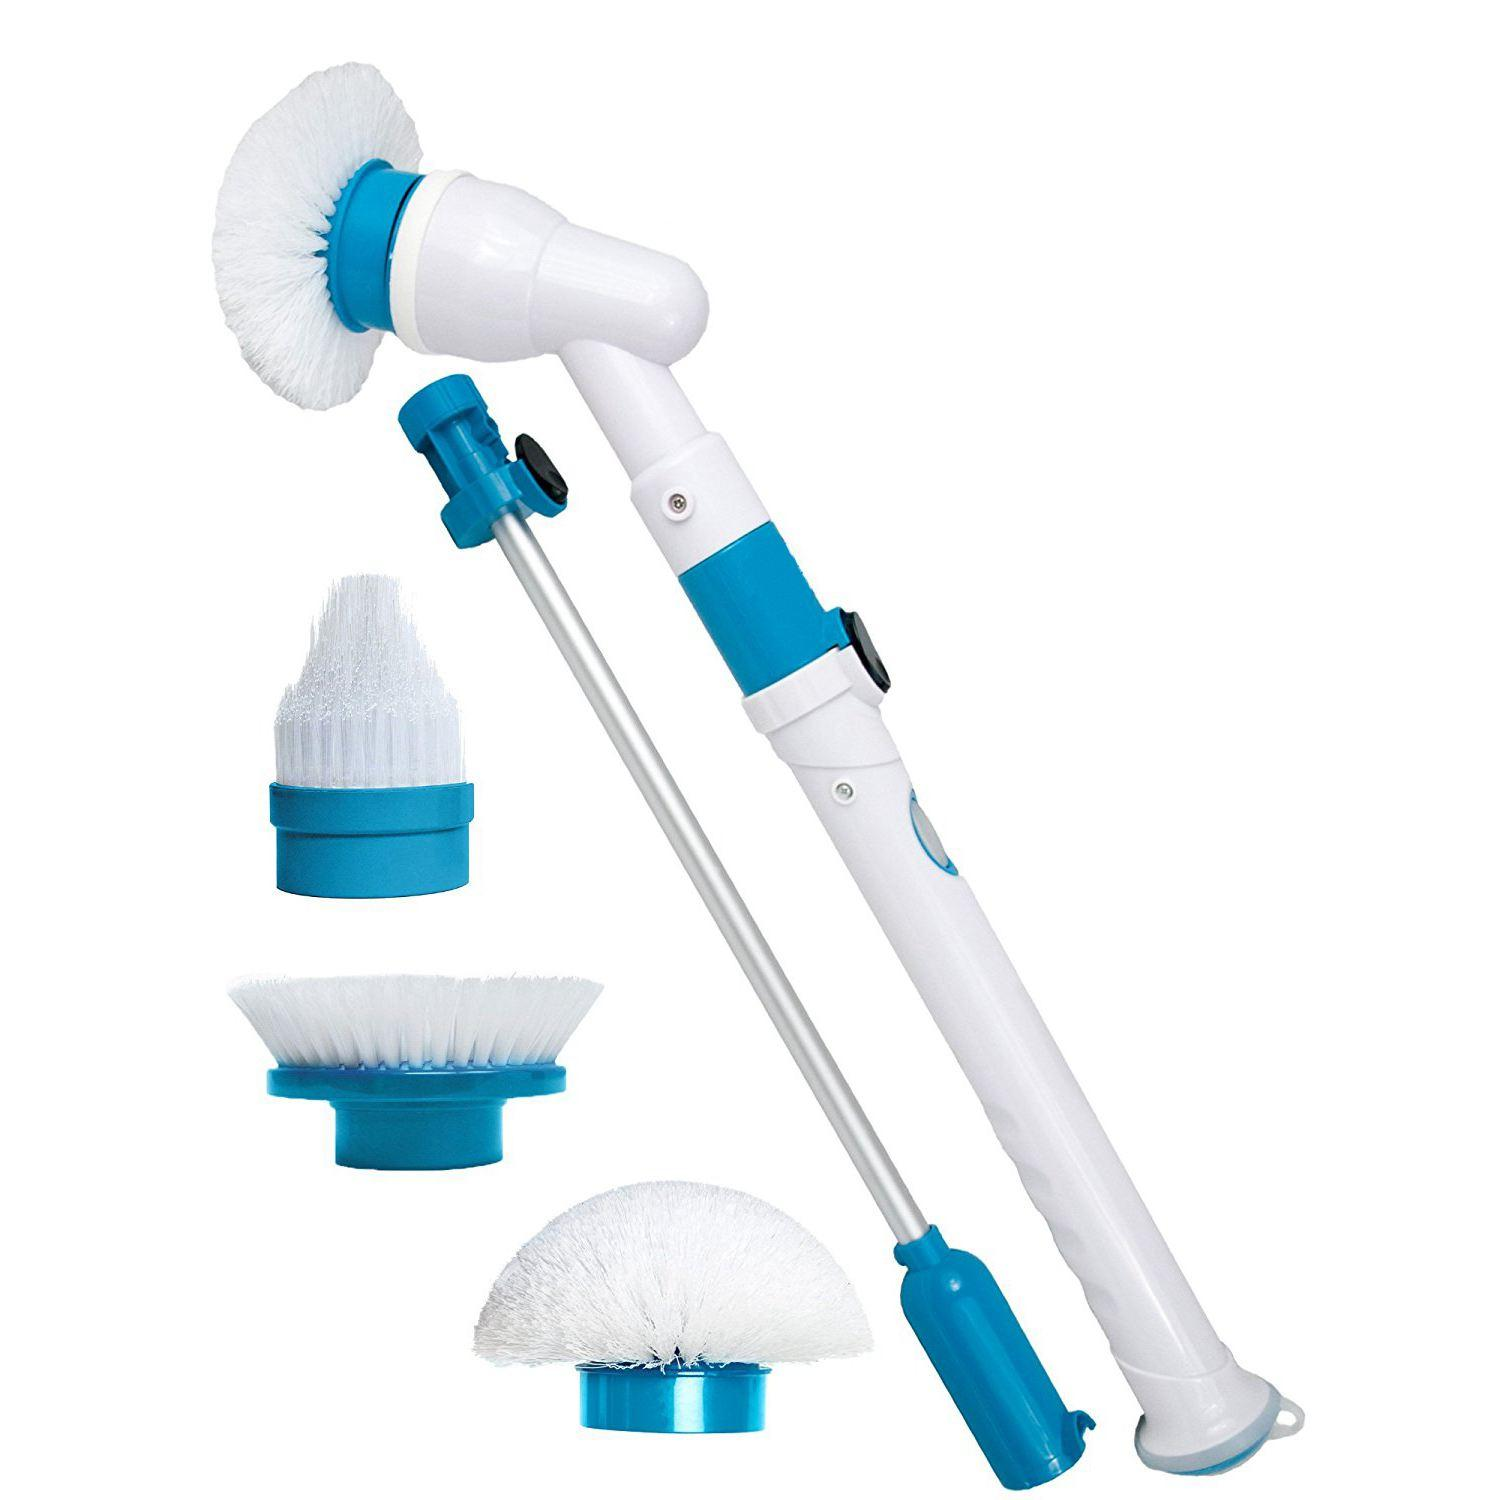 Spin Scrubber Electric Powerful Cleaning Brush with Extension Handle Tub and Tile Scrubber for Bathroom Floor